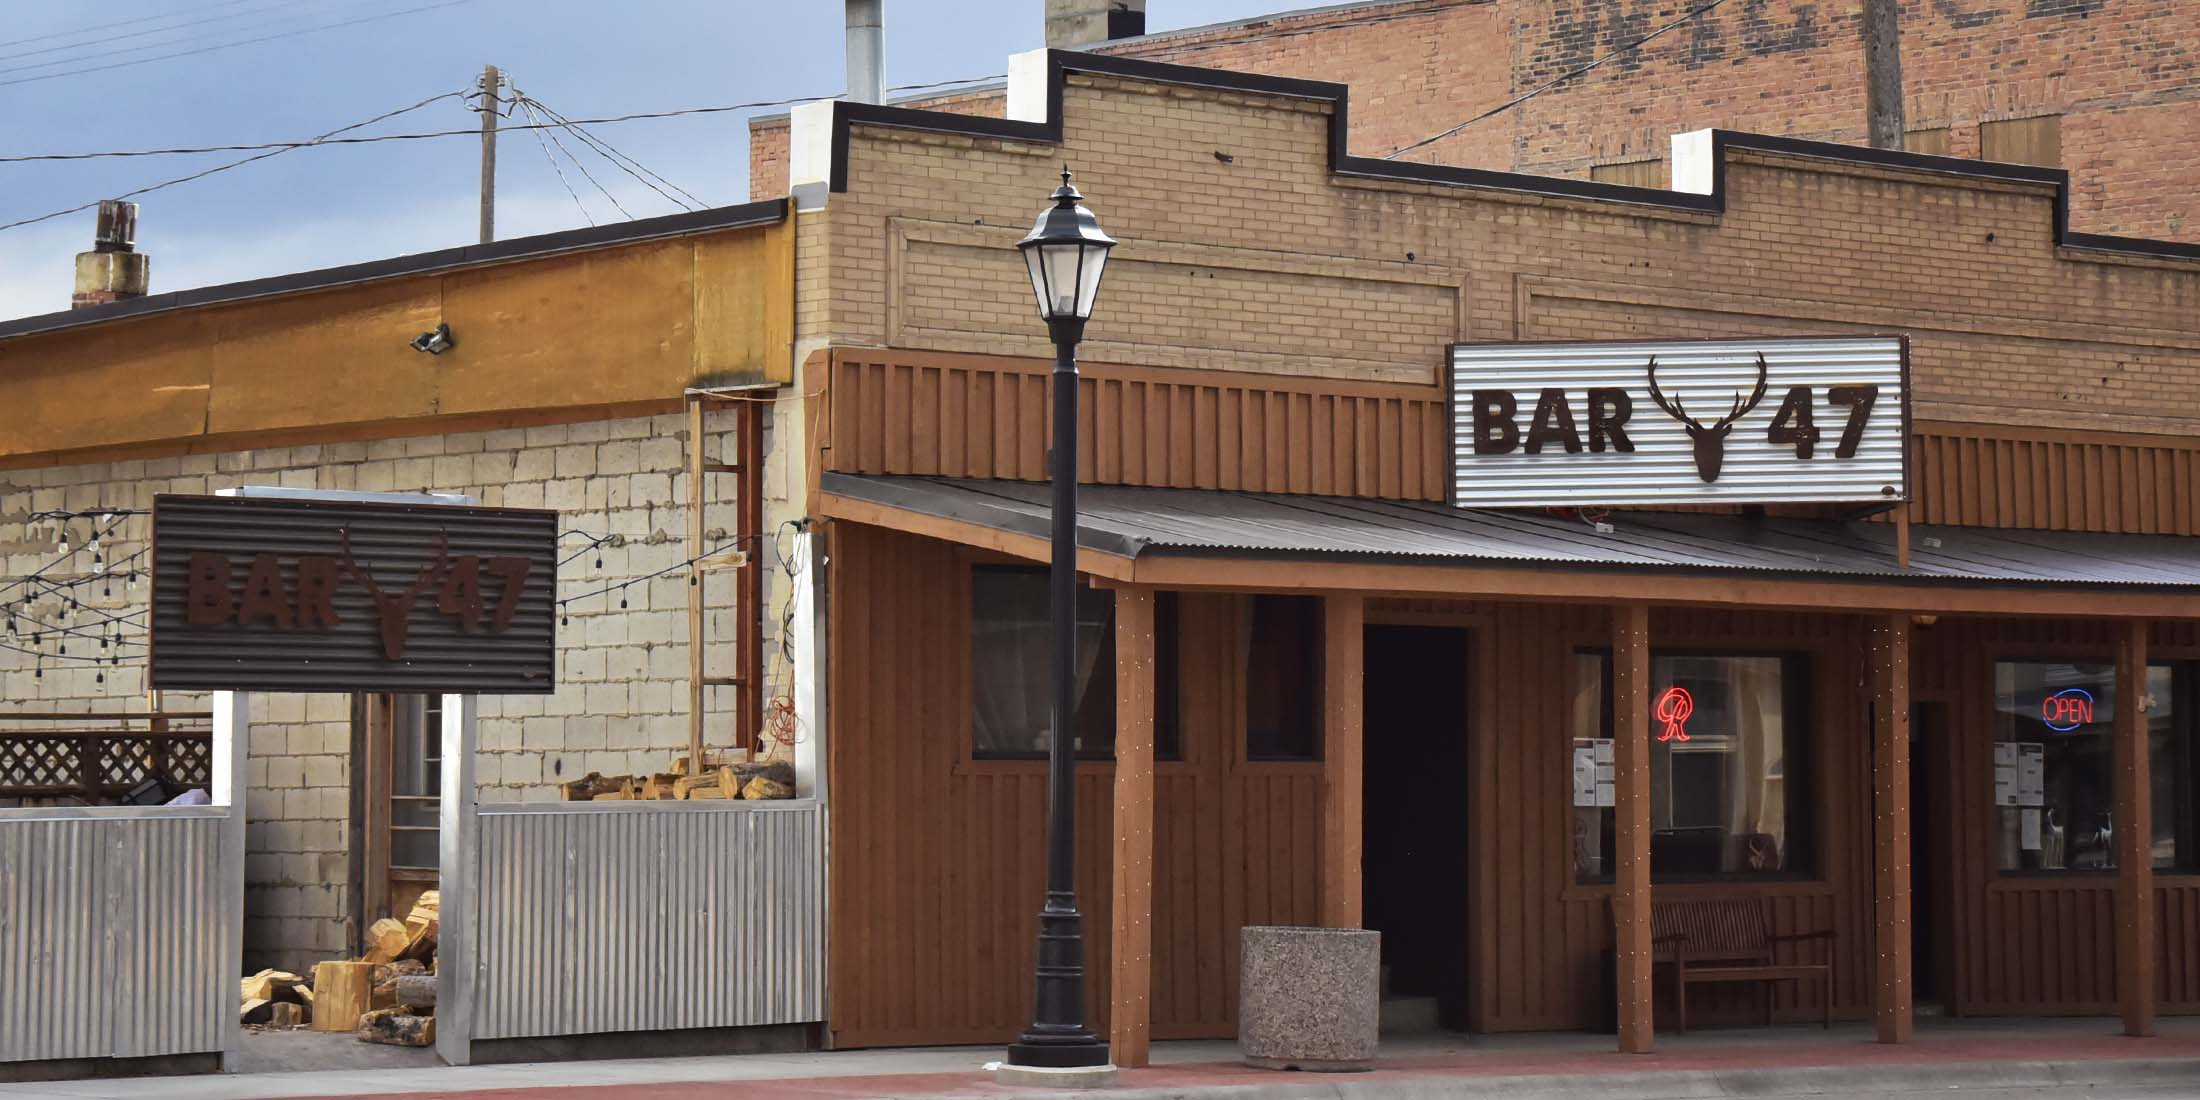 Information about food and drink services at Bar-47 located on Main Street, Highway 89, in White Sulphur Springs, Meagher County, Montana.